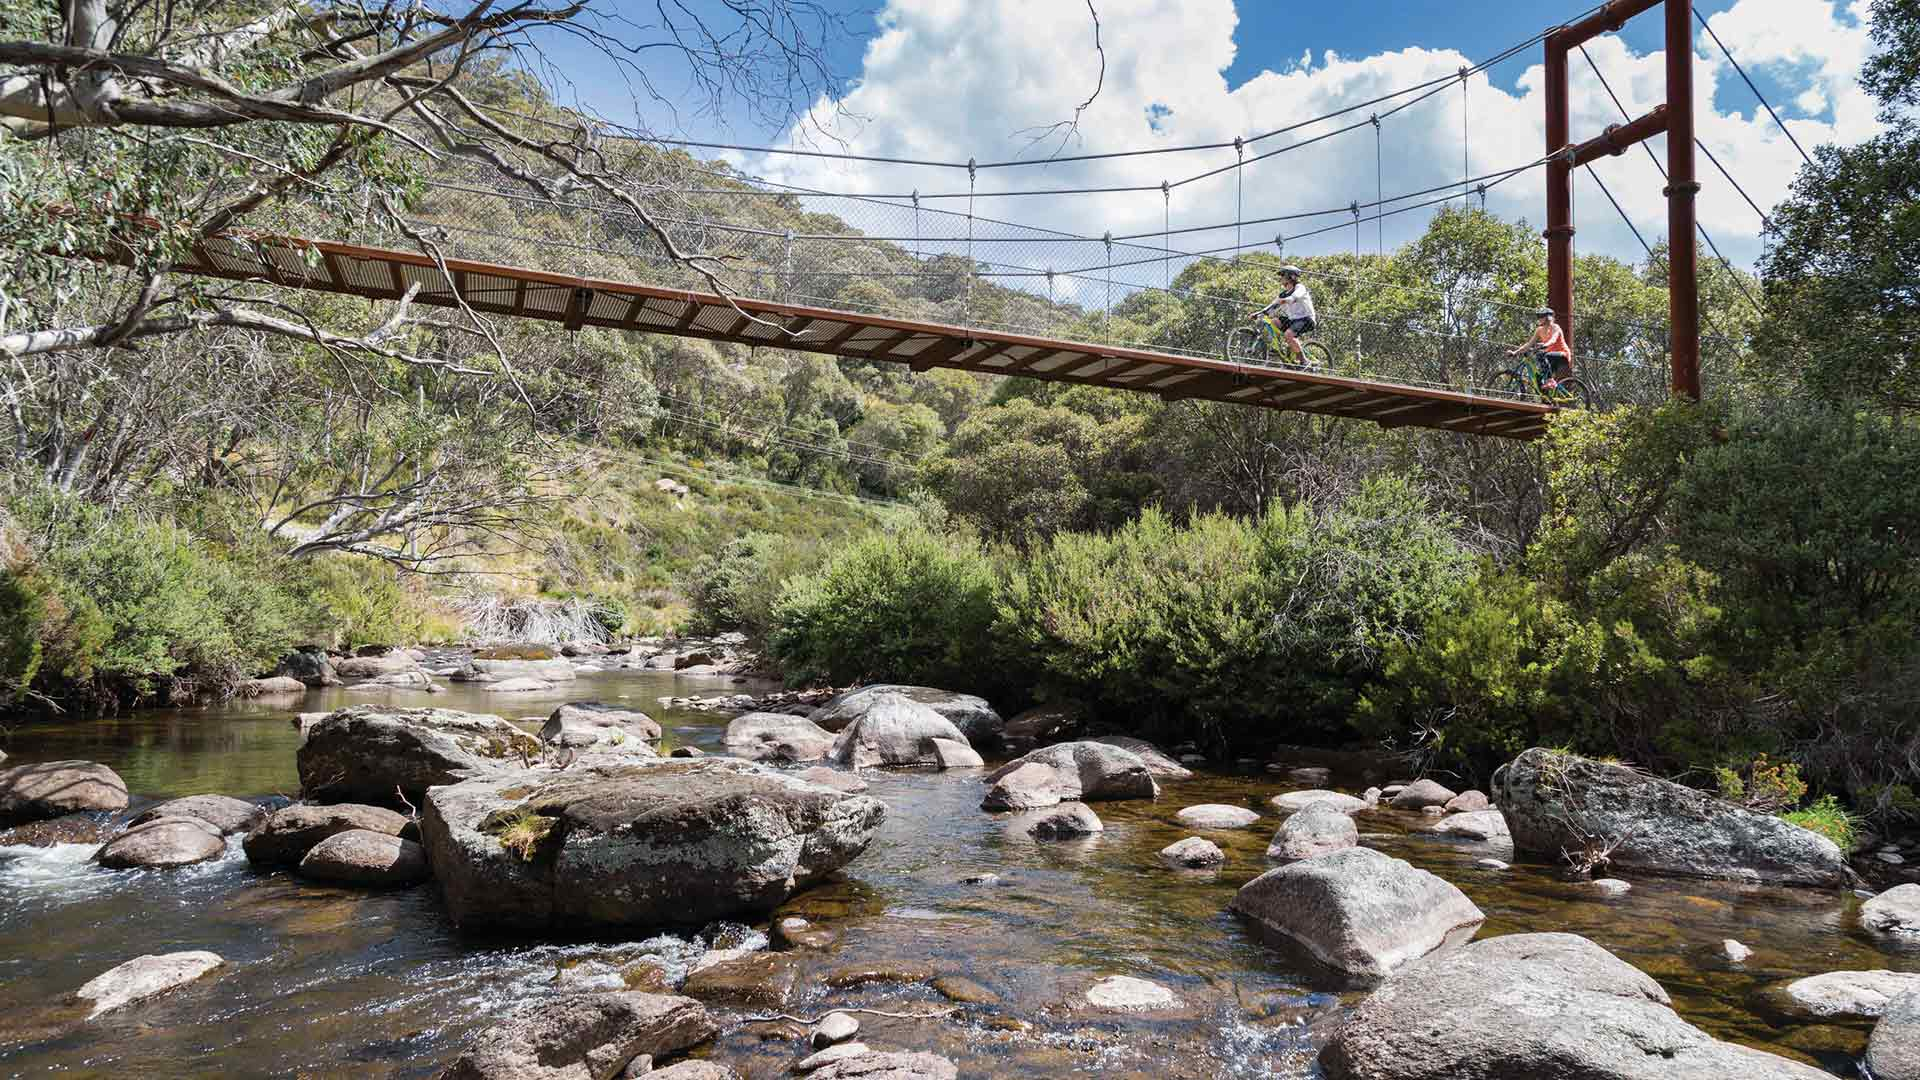 NSW's Snowy Mountains Are Getting an Epic New Multi-Day Hiking Trail